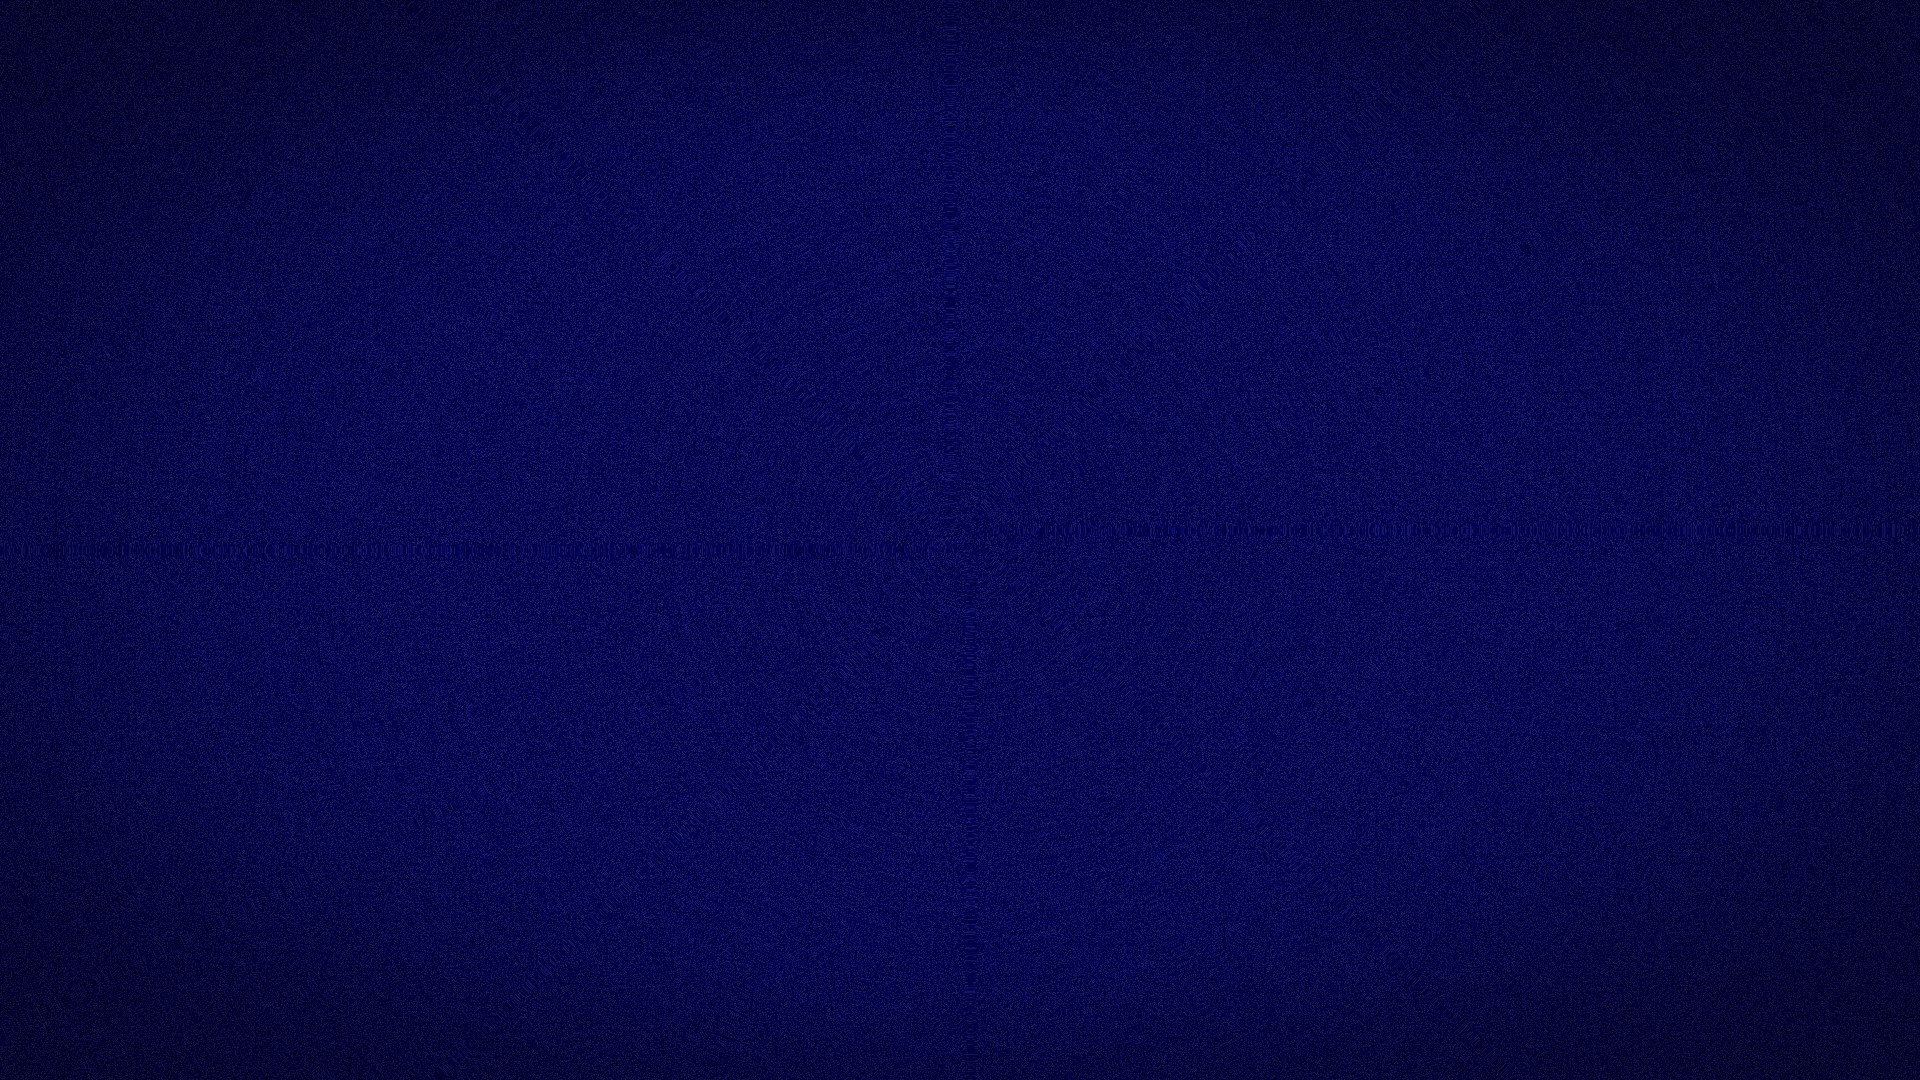 Solid Color Wallpaper 870499 Solid Blue Background 891299 Solid Blue 1920x1080